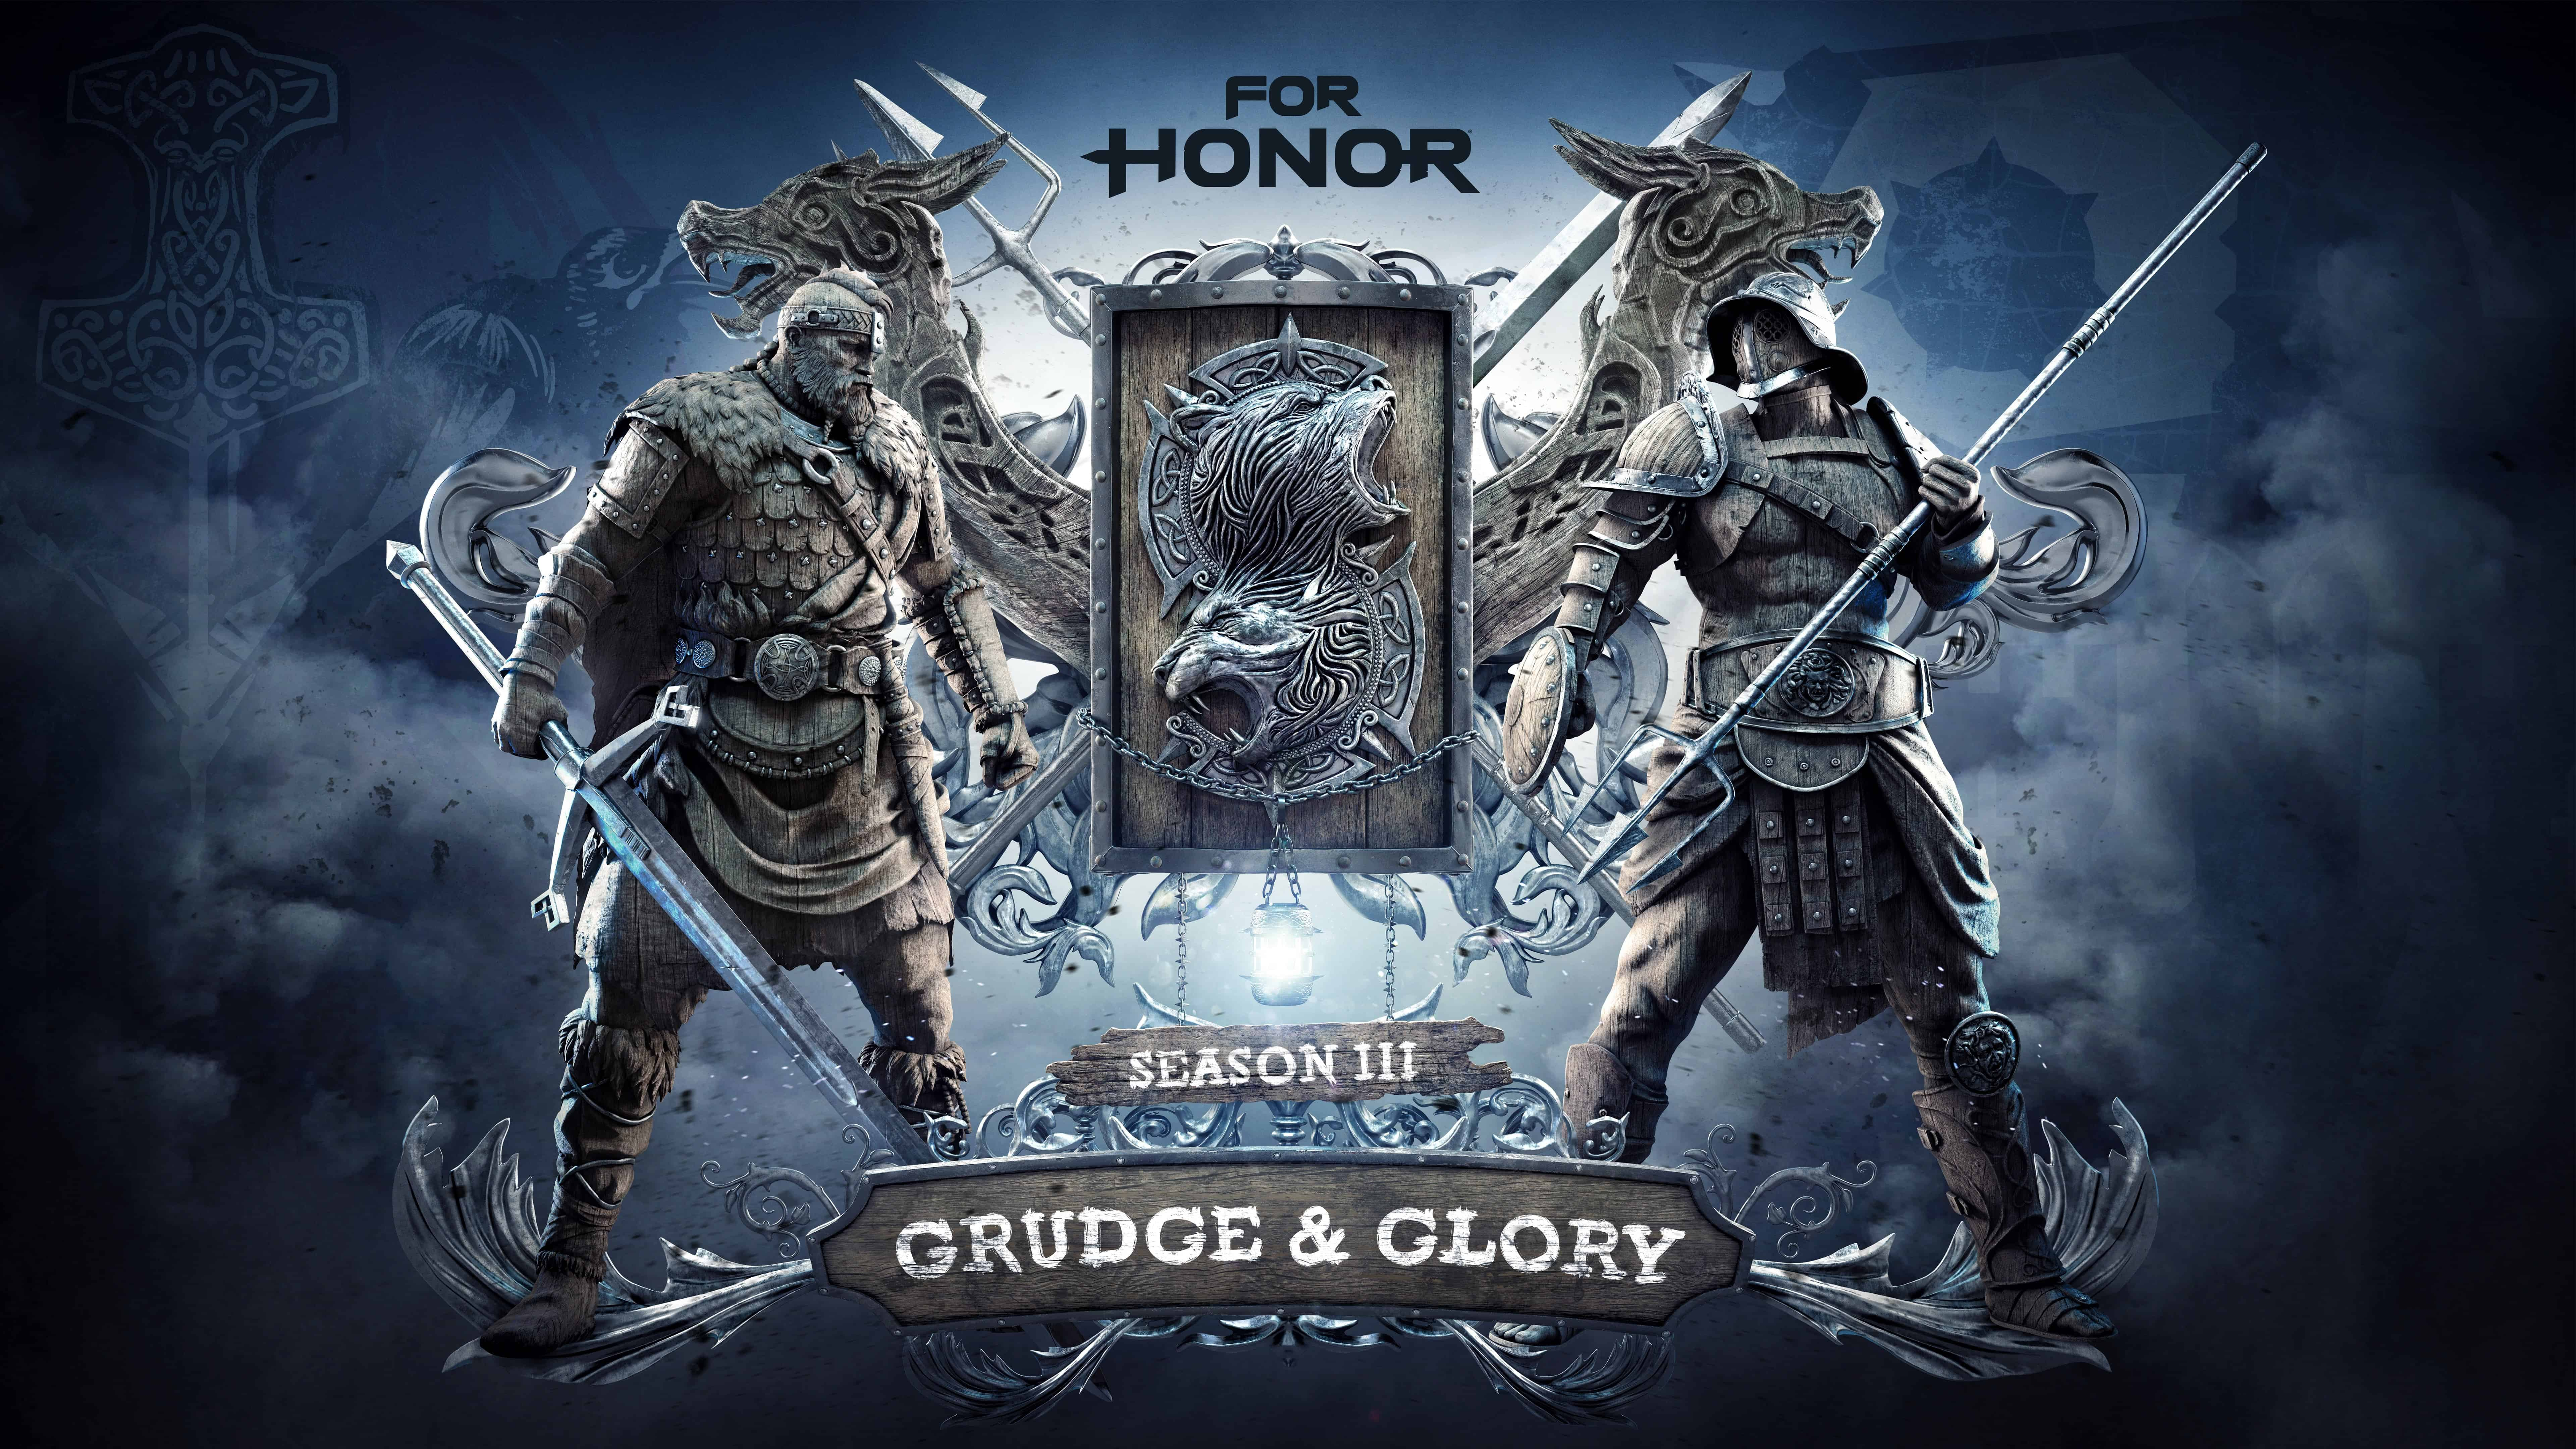 for honor season three grudge and glory uhd 8k wallpaper